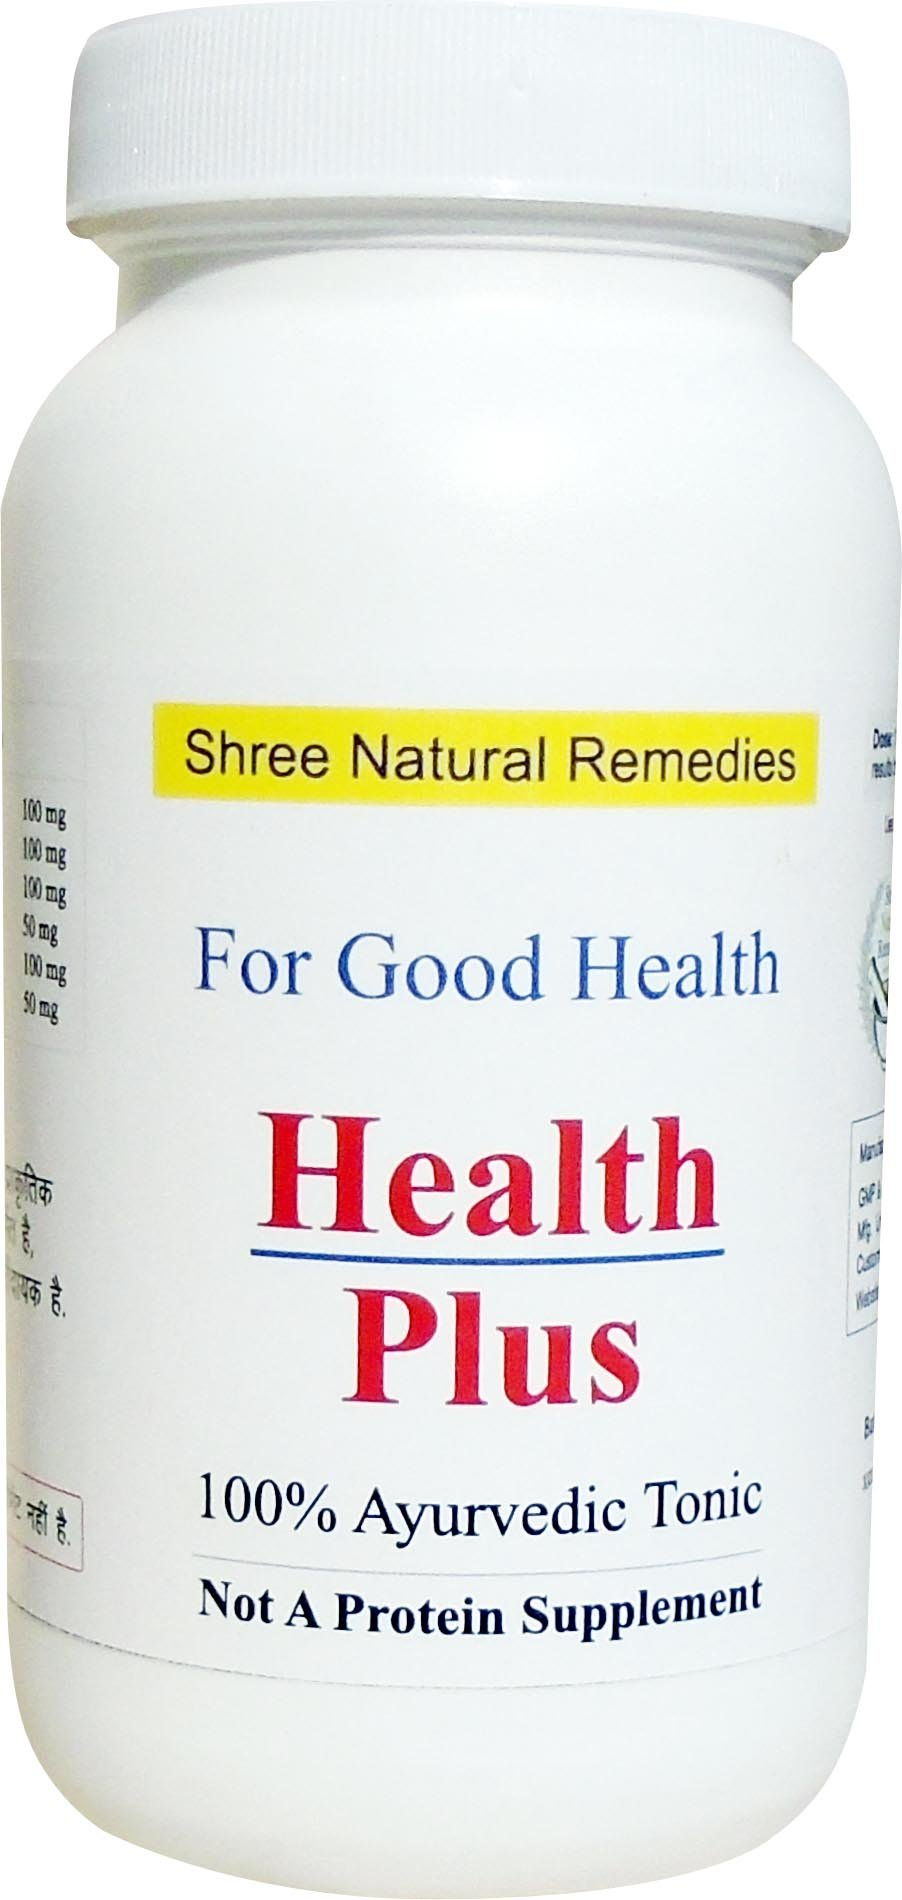 HEALTH PLUS Herbal Product improves Immunity, Health & Makes your Body Stronger